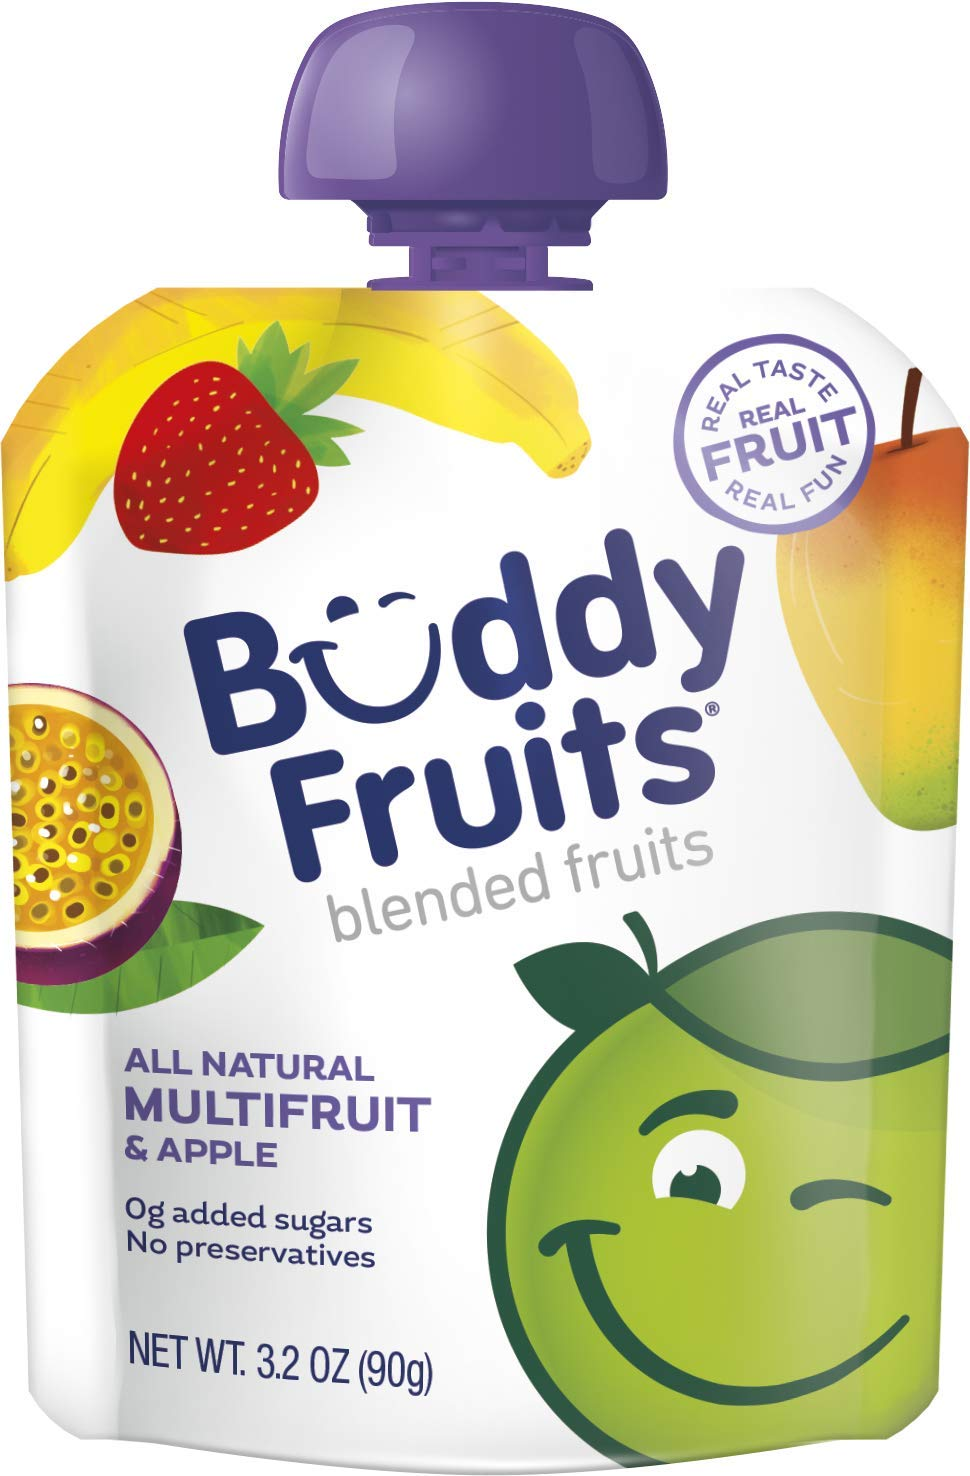 Buddy Fruits Pure Blended Fruit To Go Multifruit Applesauce | 100% Real Fruit | No Sugar, Non GMO, Vegan, Gluten Free, No Preservatives, BPA Free , Certified Kosher | 3.2oz Pouch 24 Pack